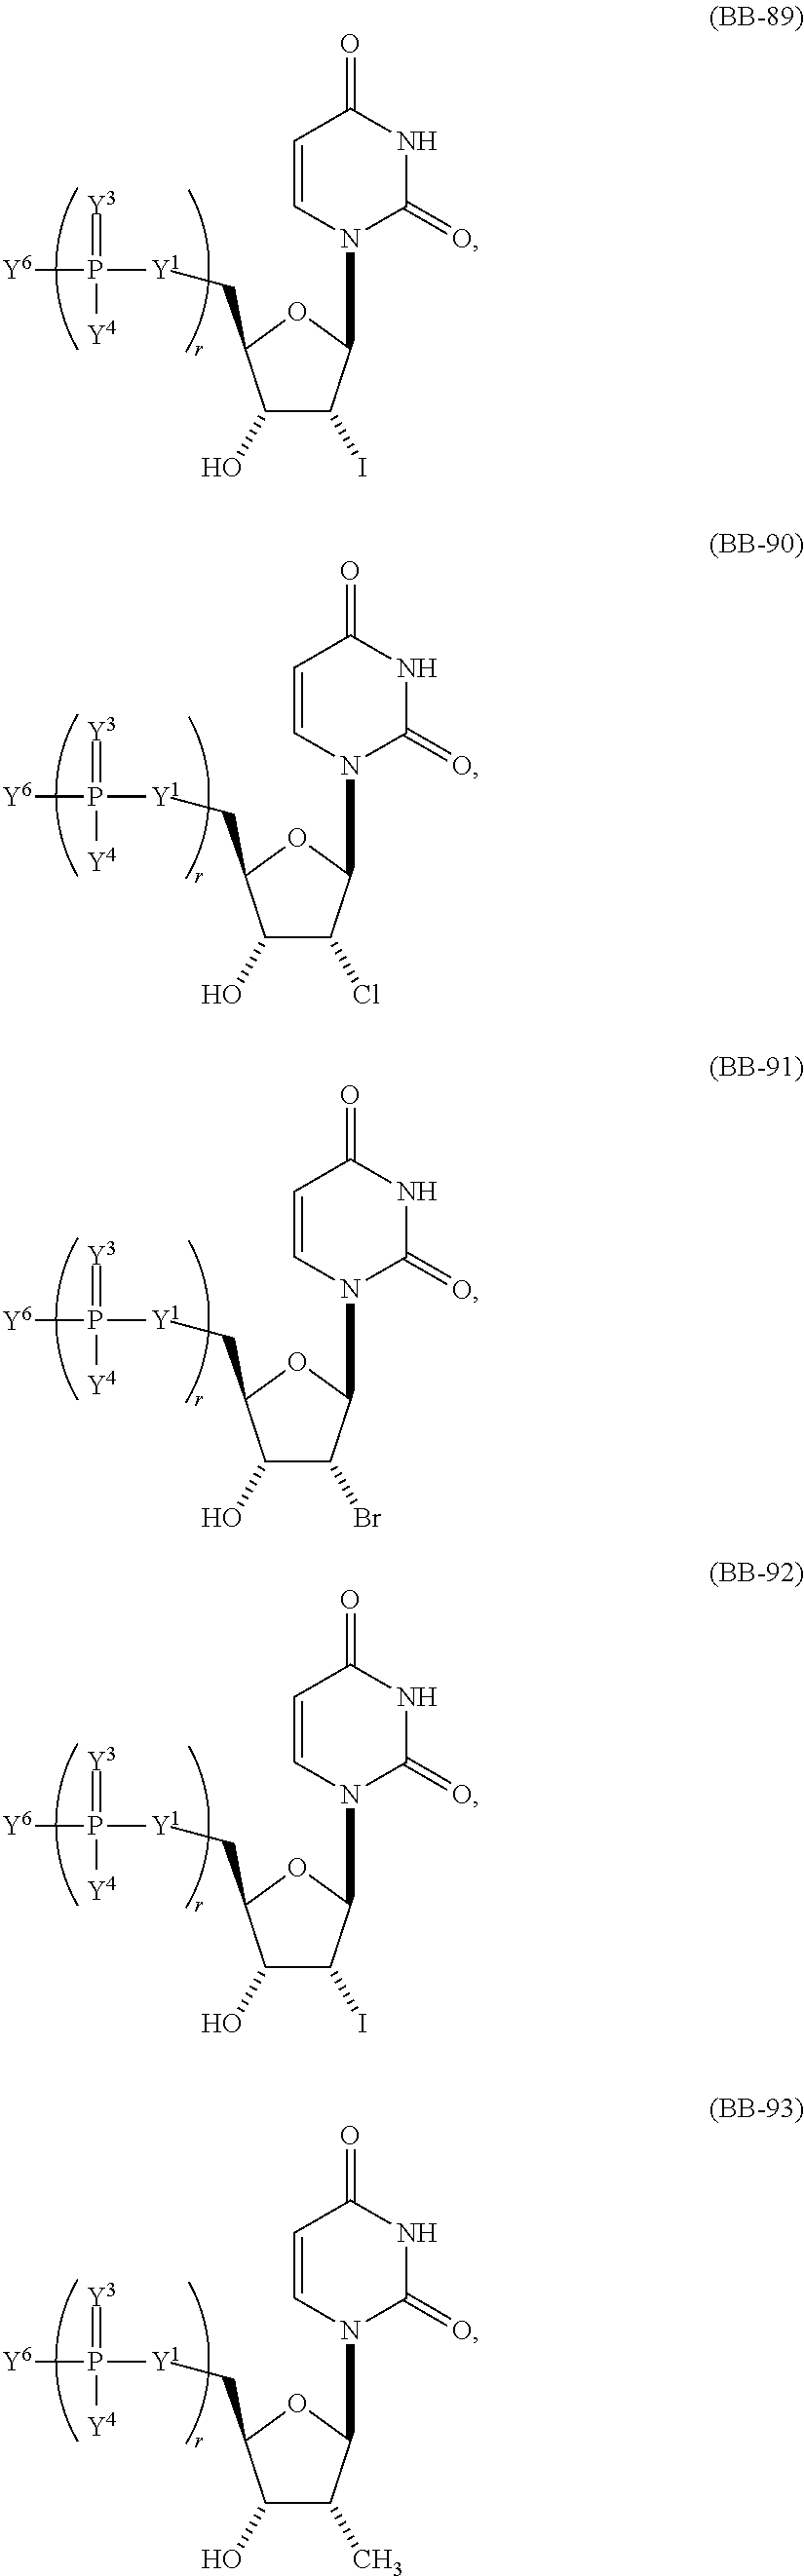 US9221891B2 - In vivo production of proteins - Google Patents